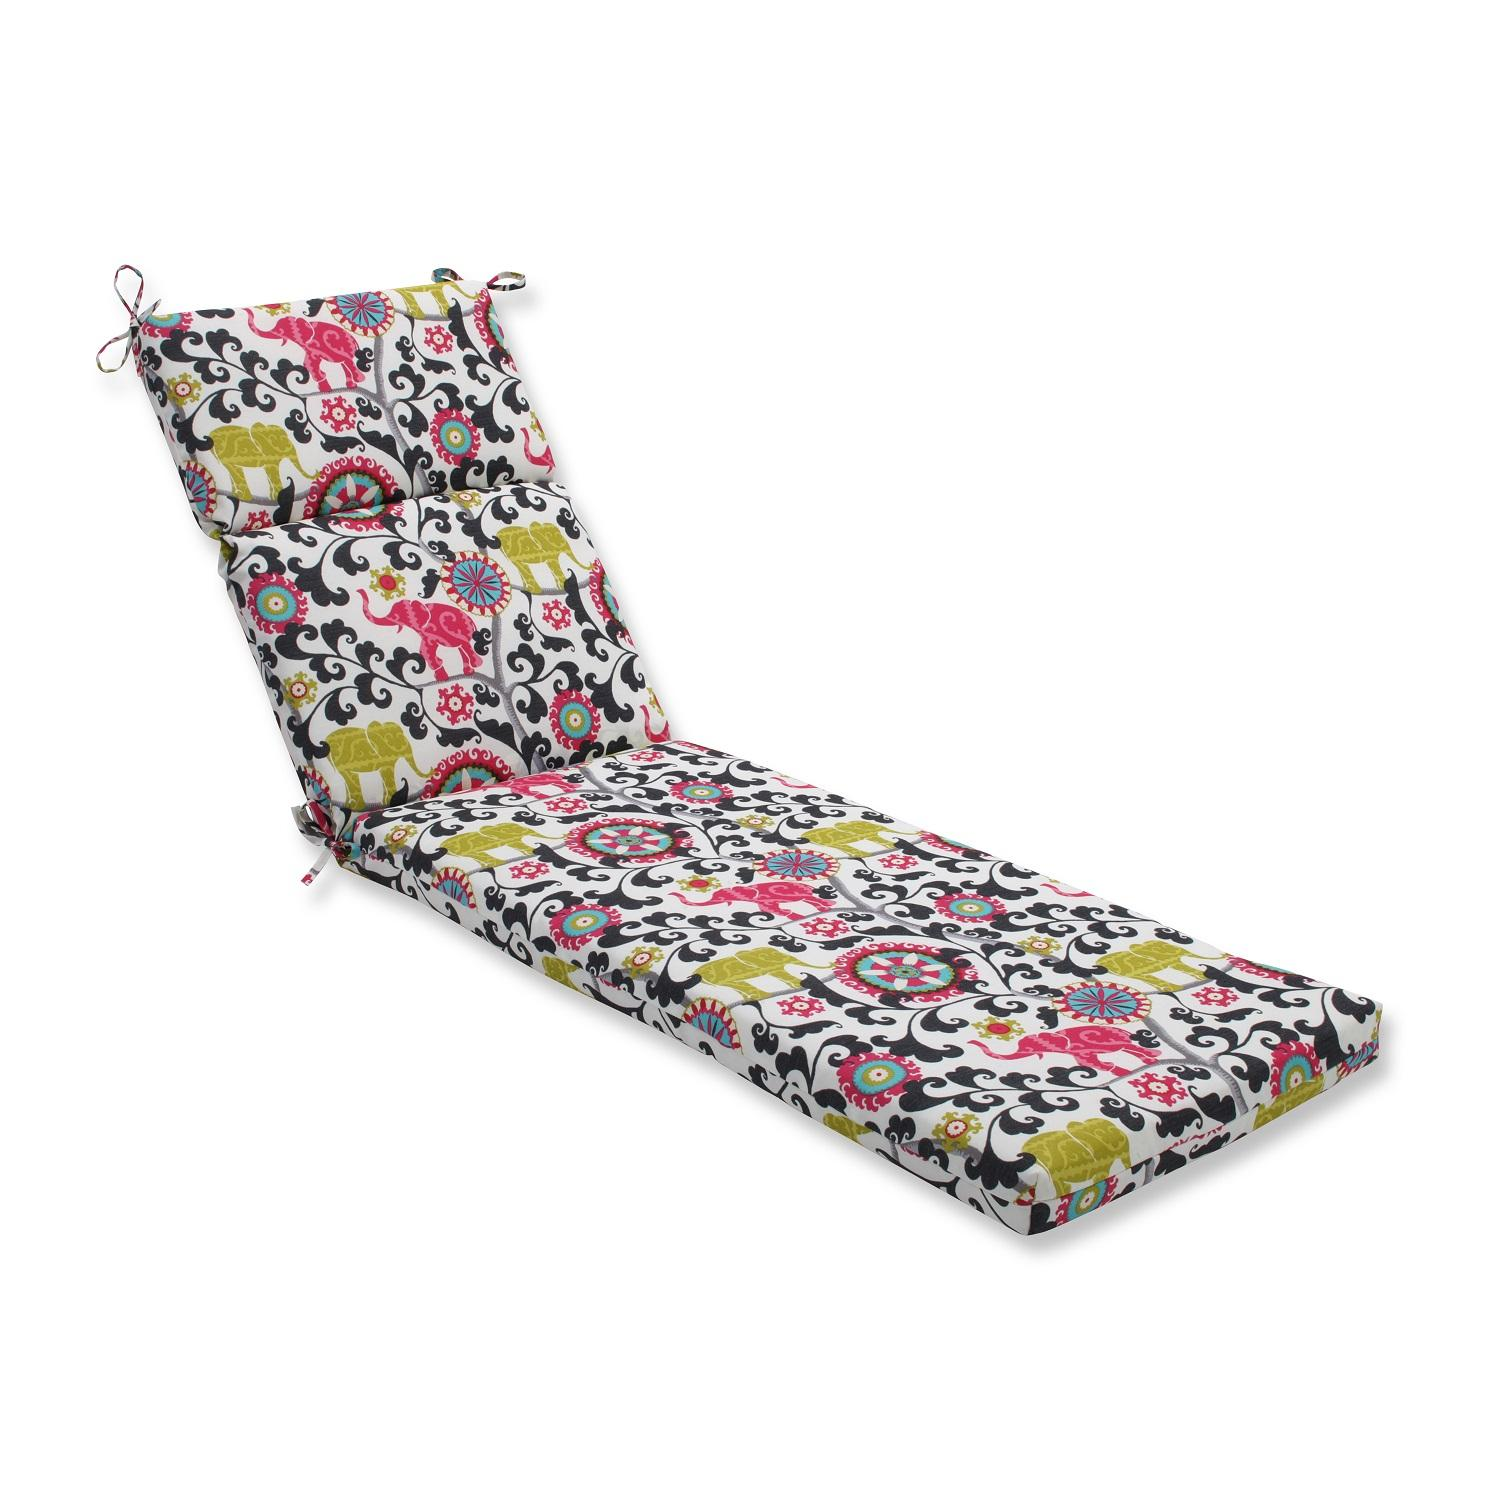 """72.5"""" Pink and Black Elephant Dreams Outdoor Patio Chaise Lounge Cushion"""